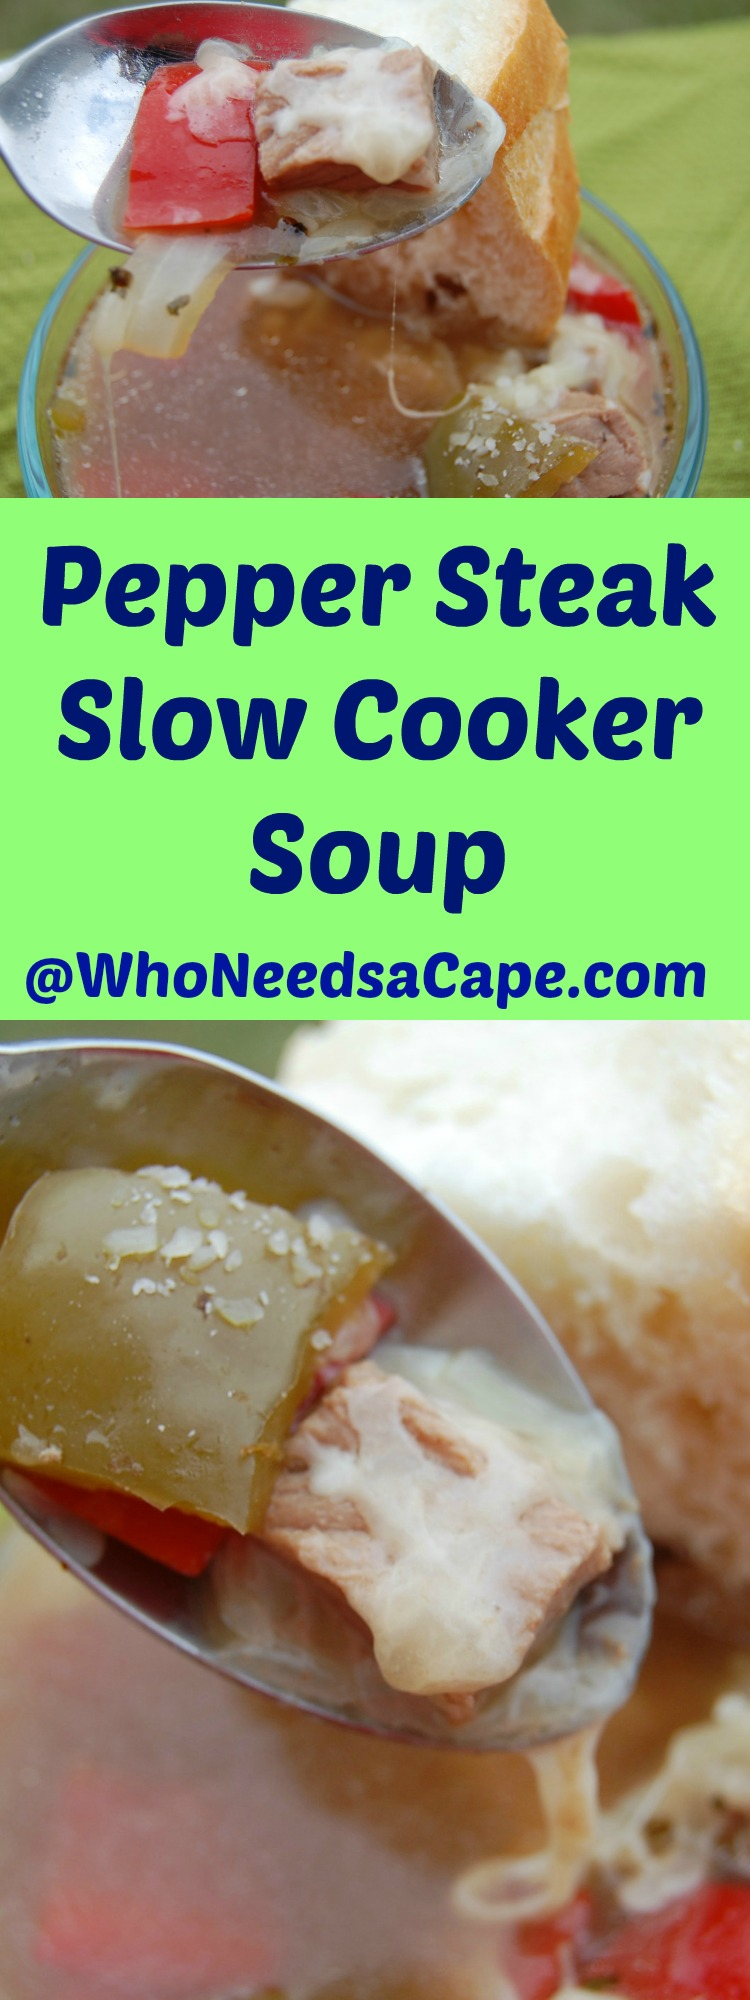 Pepper Steak Slow Cooker Soup is an amazing soup. It's not hard to make but is so flavorful. You'll love it